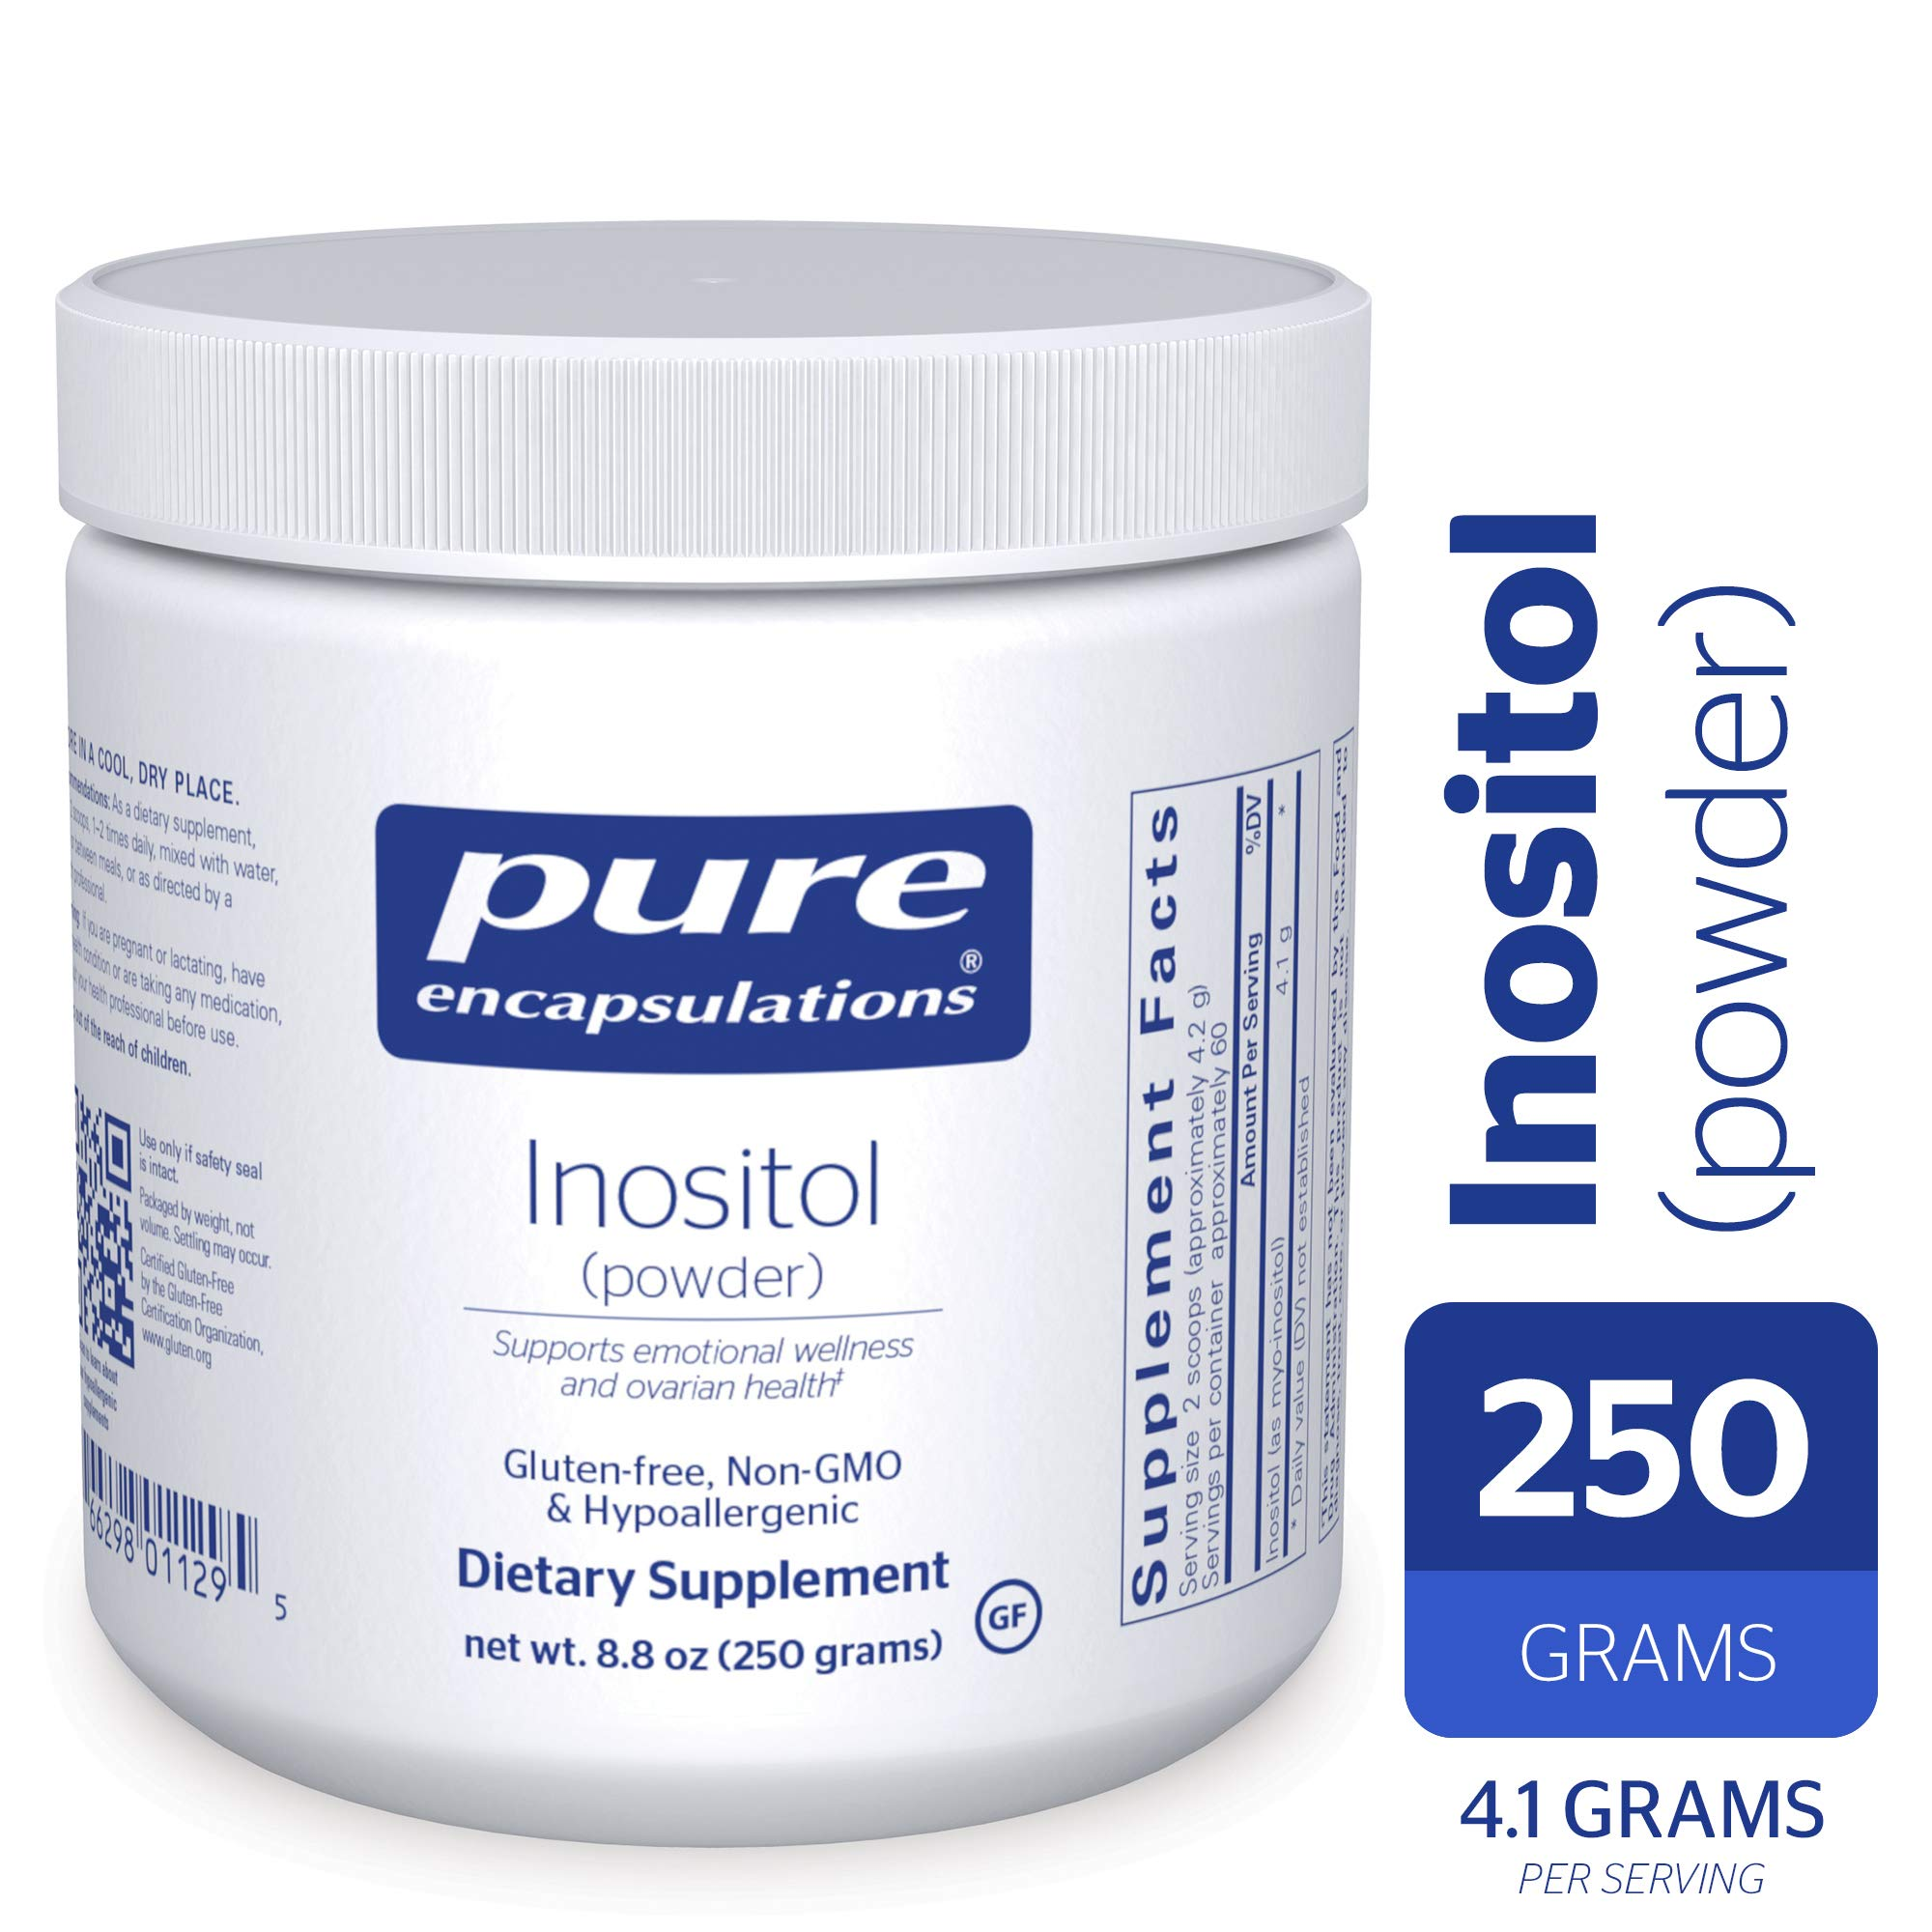 Pure Encapsulations - Inositol (Powder) - Hypoallergenic Supplement Supports Healthy Mood, Emotional Wellness and Behavior, and Ovarian Function* - 250 Grams by Pure Encapsulations